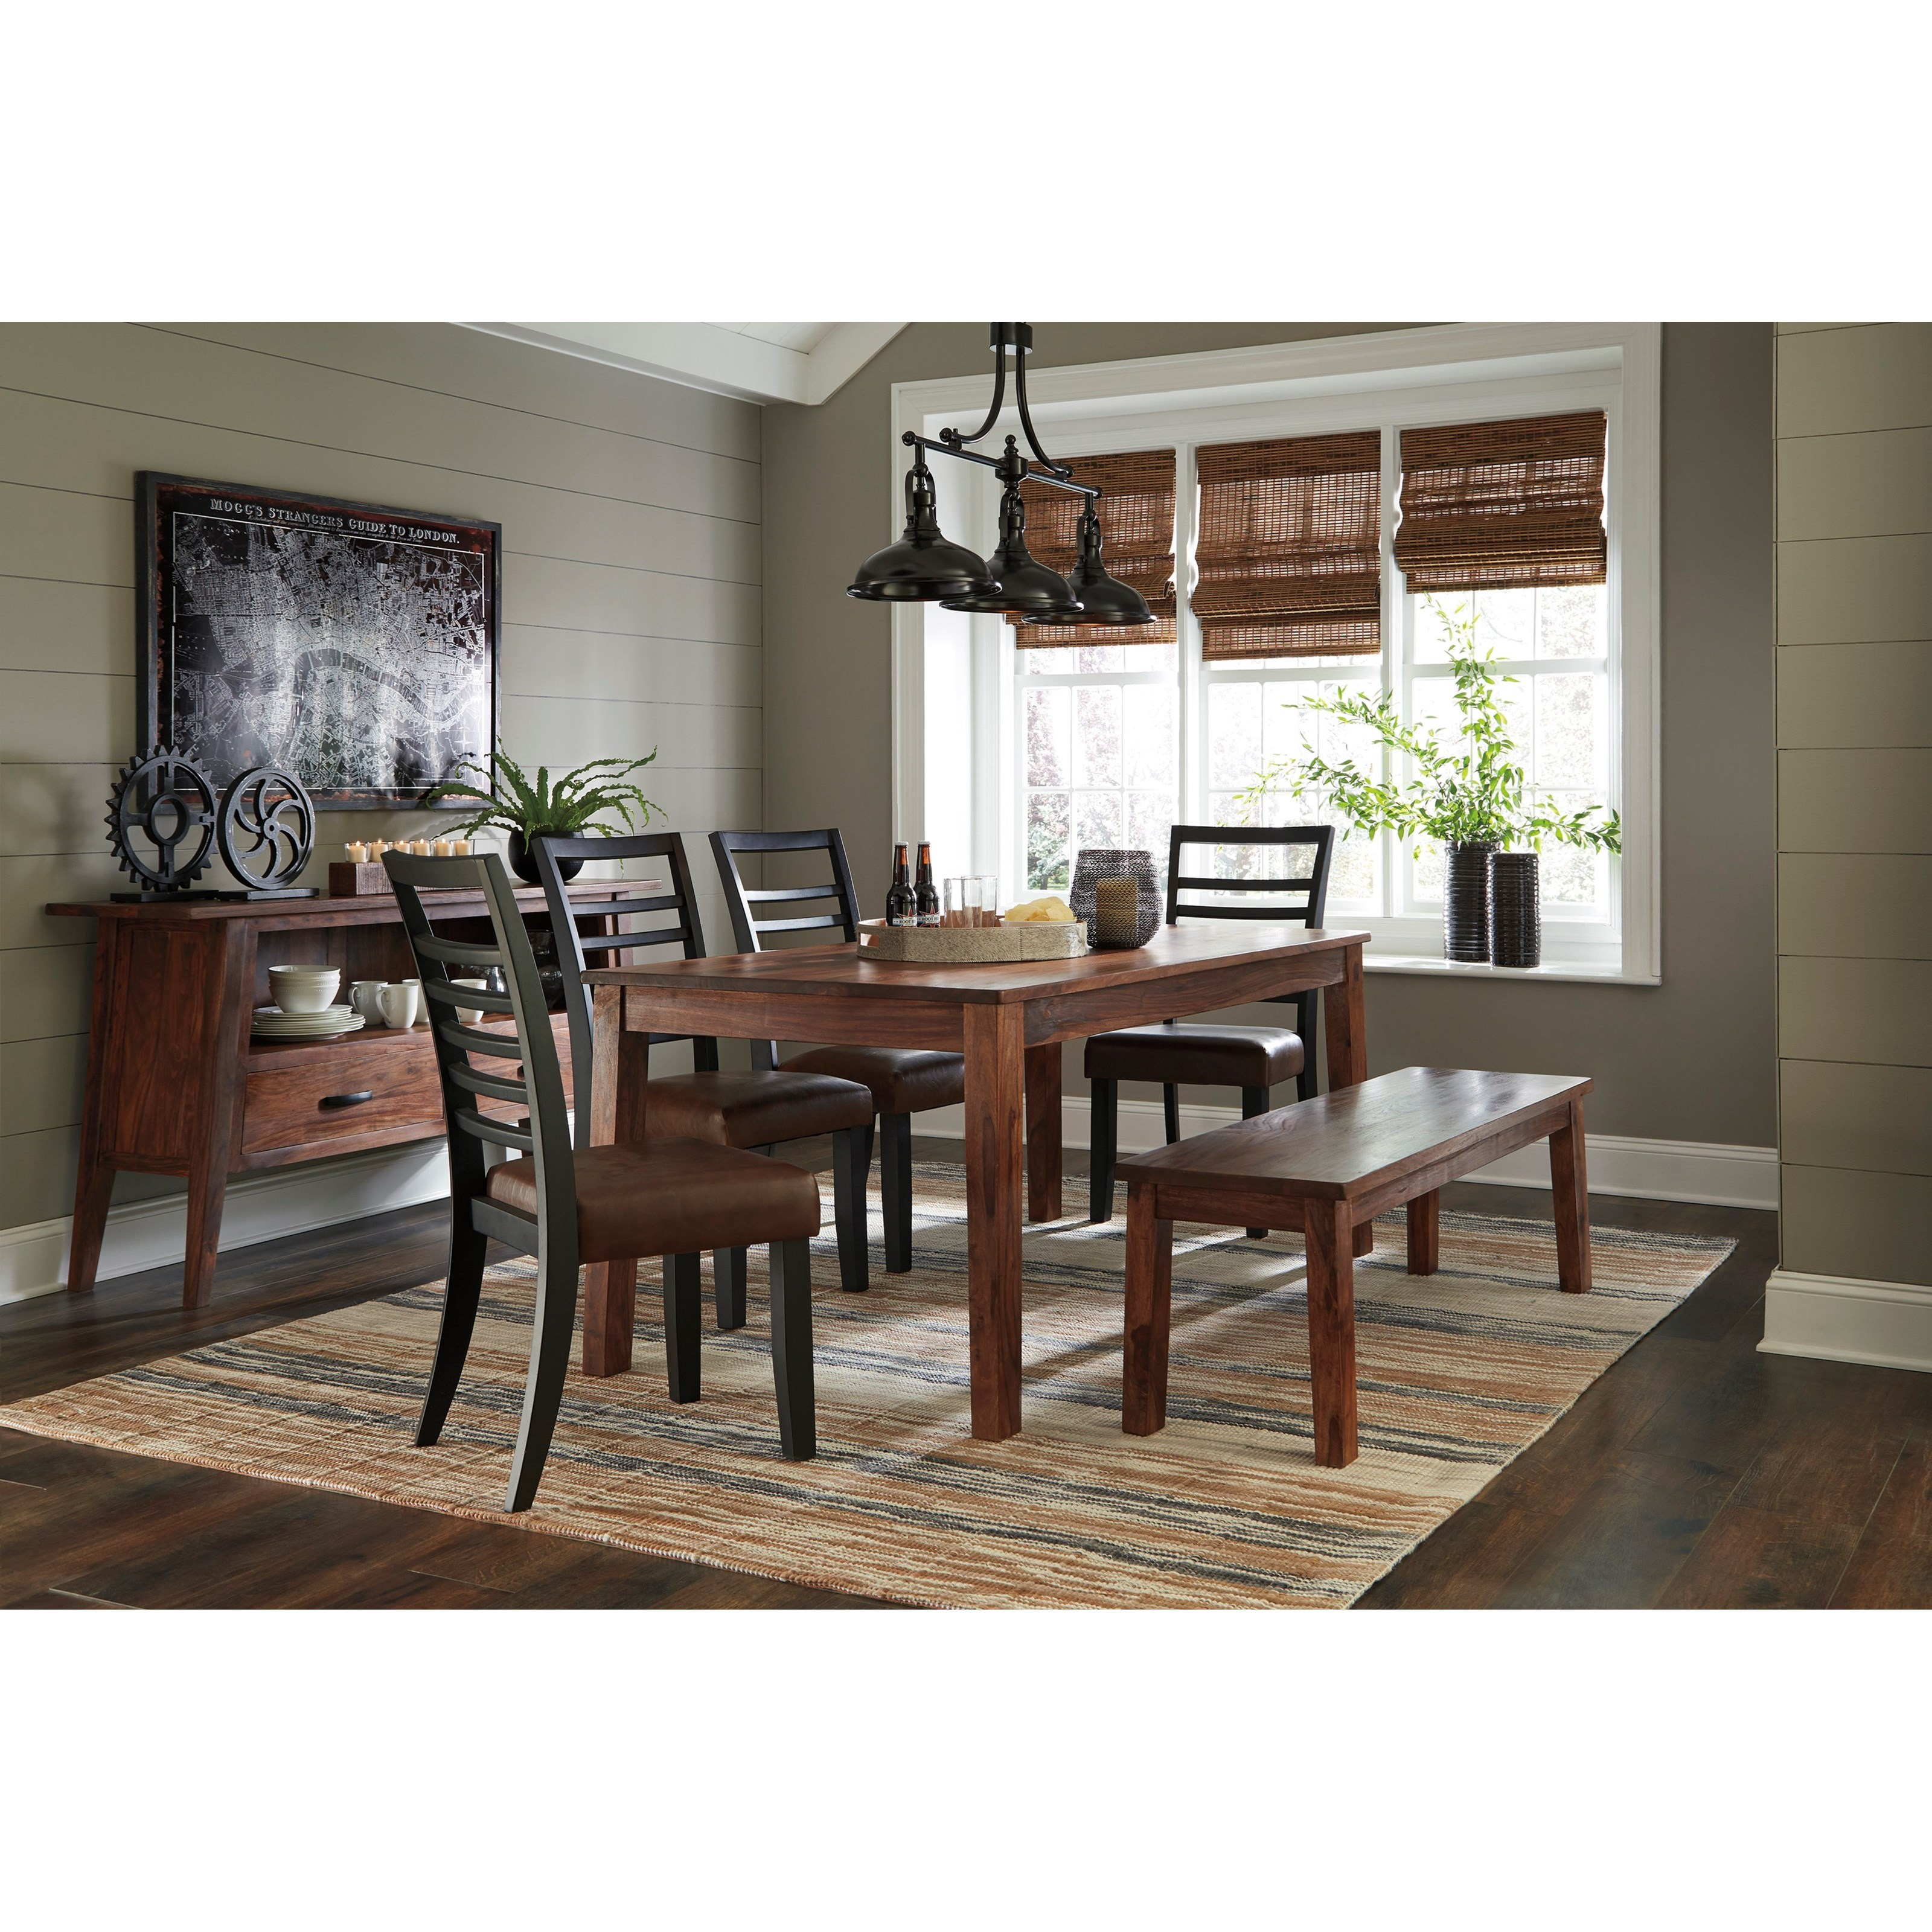 Signature design by ashley manishore casual dining room for Casual dining room